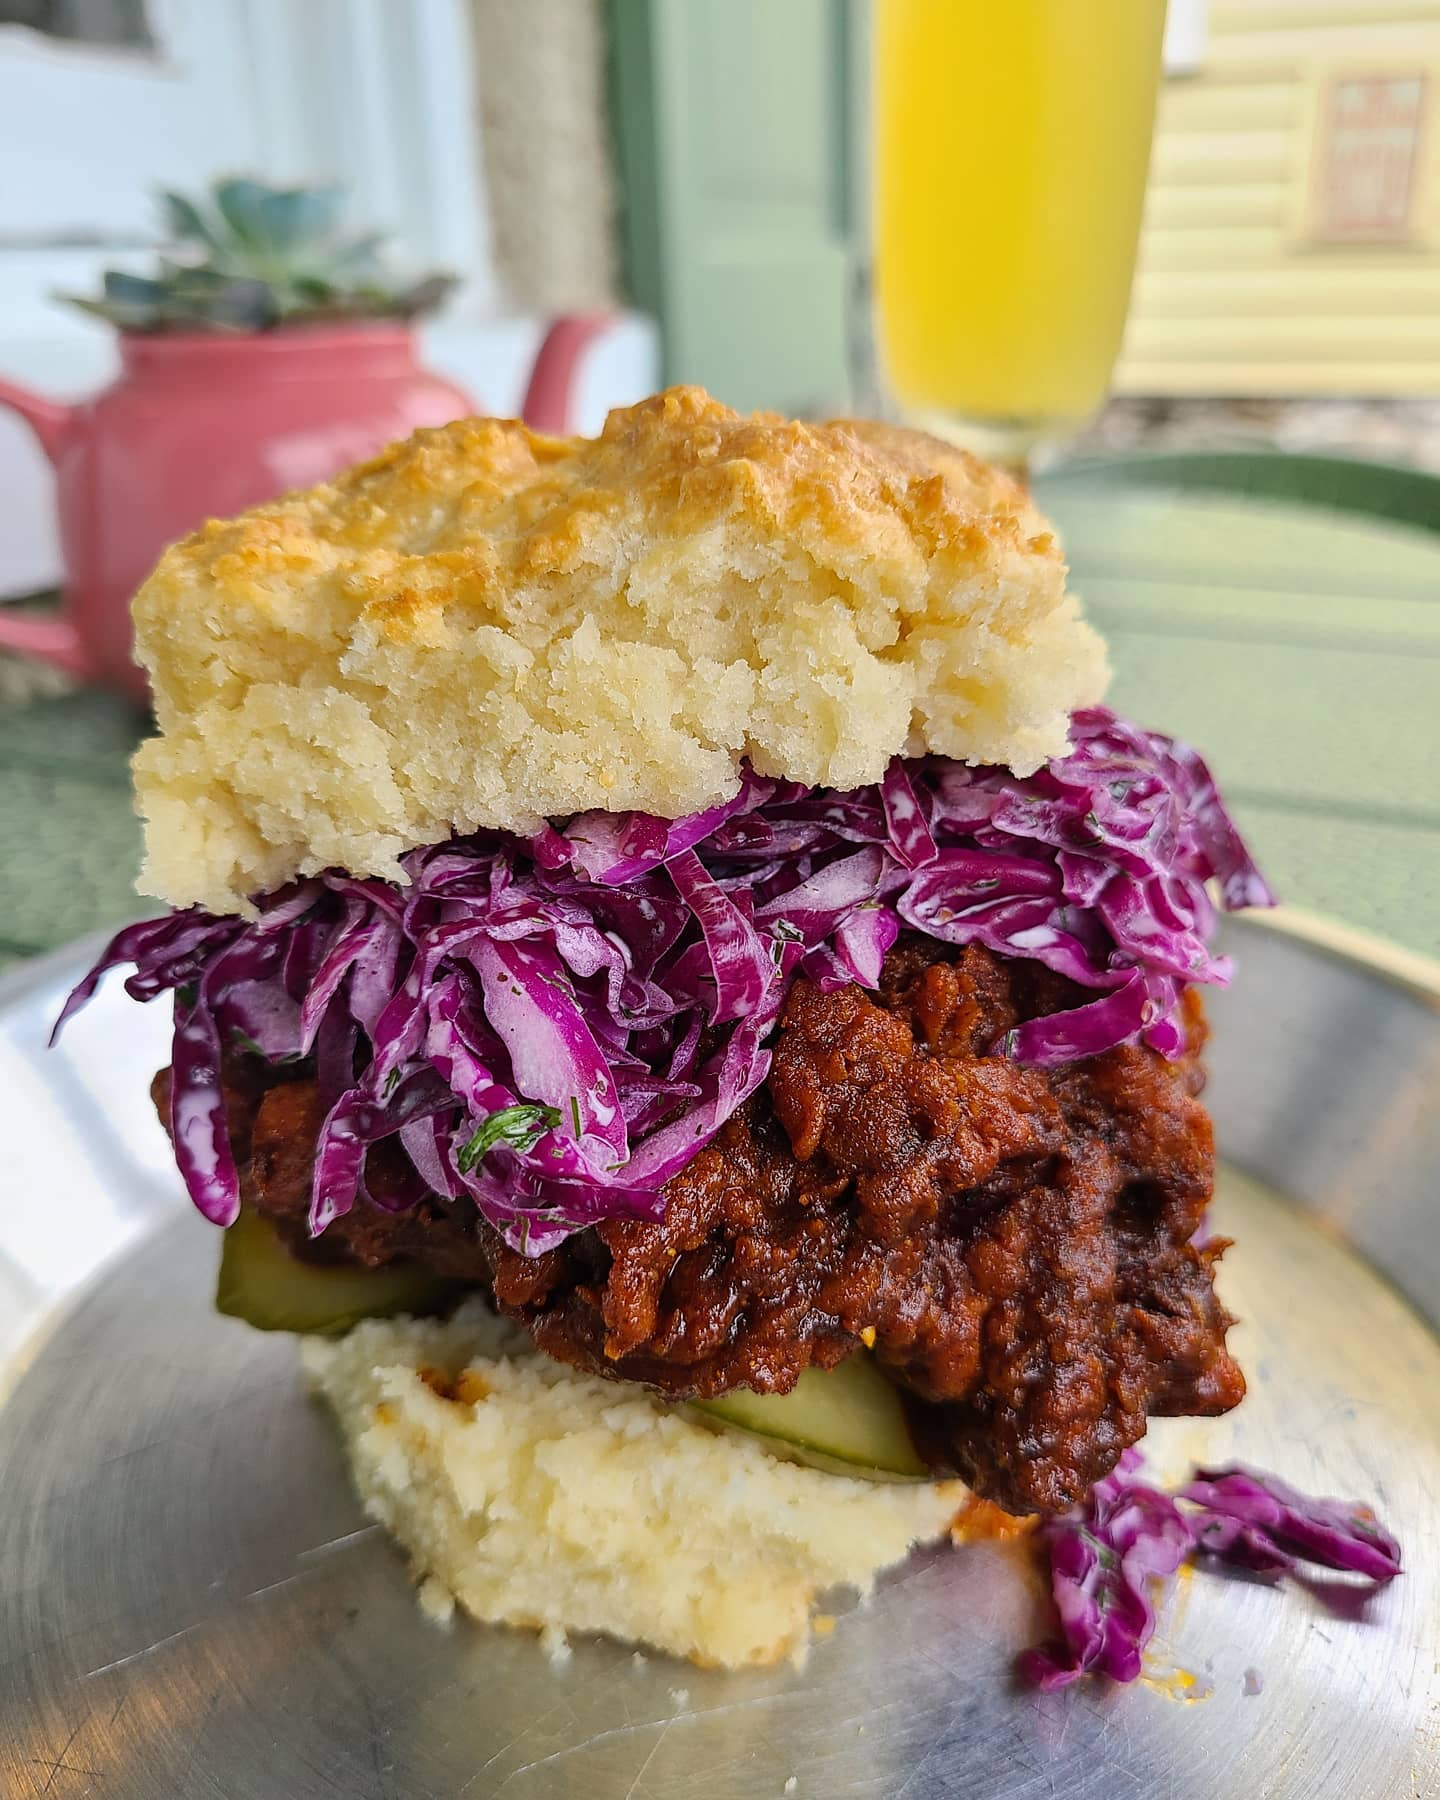 The Nashville hot chicken biscuit with cabbage slaw at Buford's Biscuits